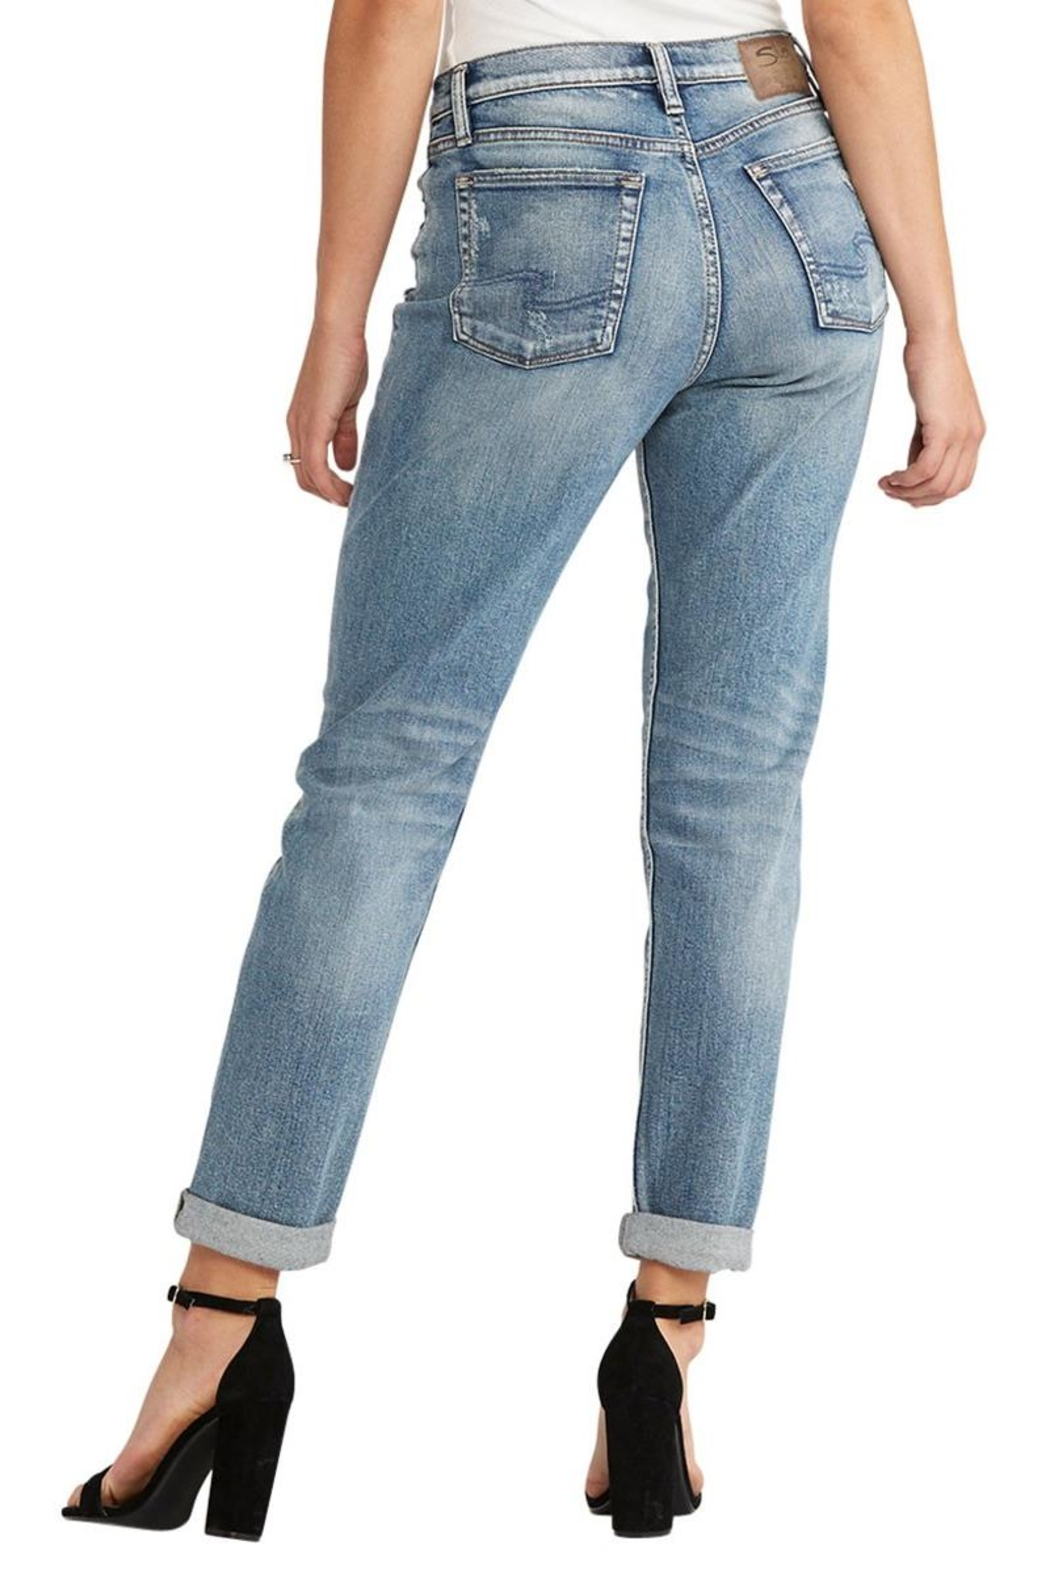 Silver Jeans Co. Mom Jeans from Canada by Cherry Wine Fashions ...